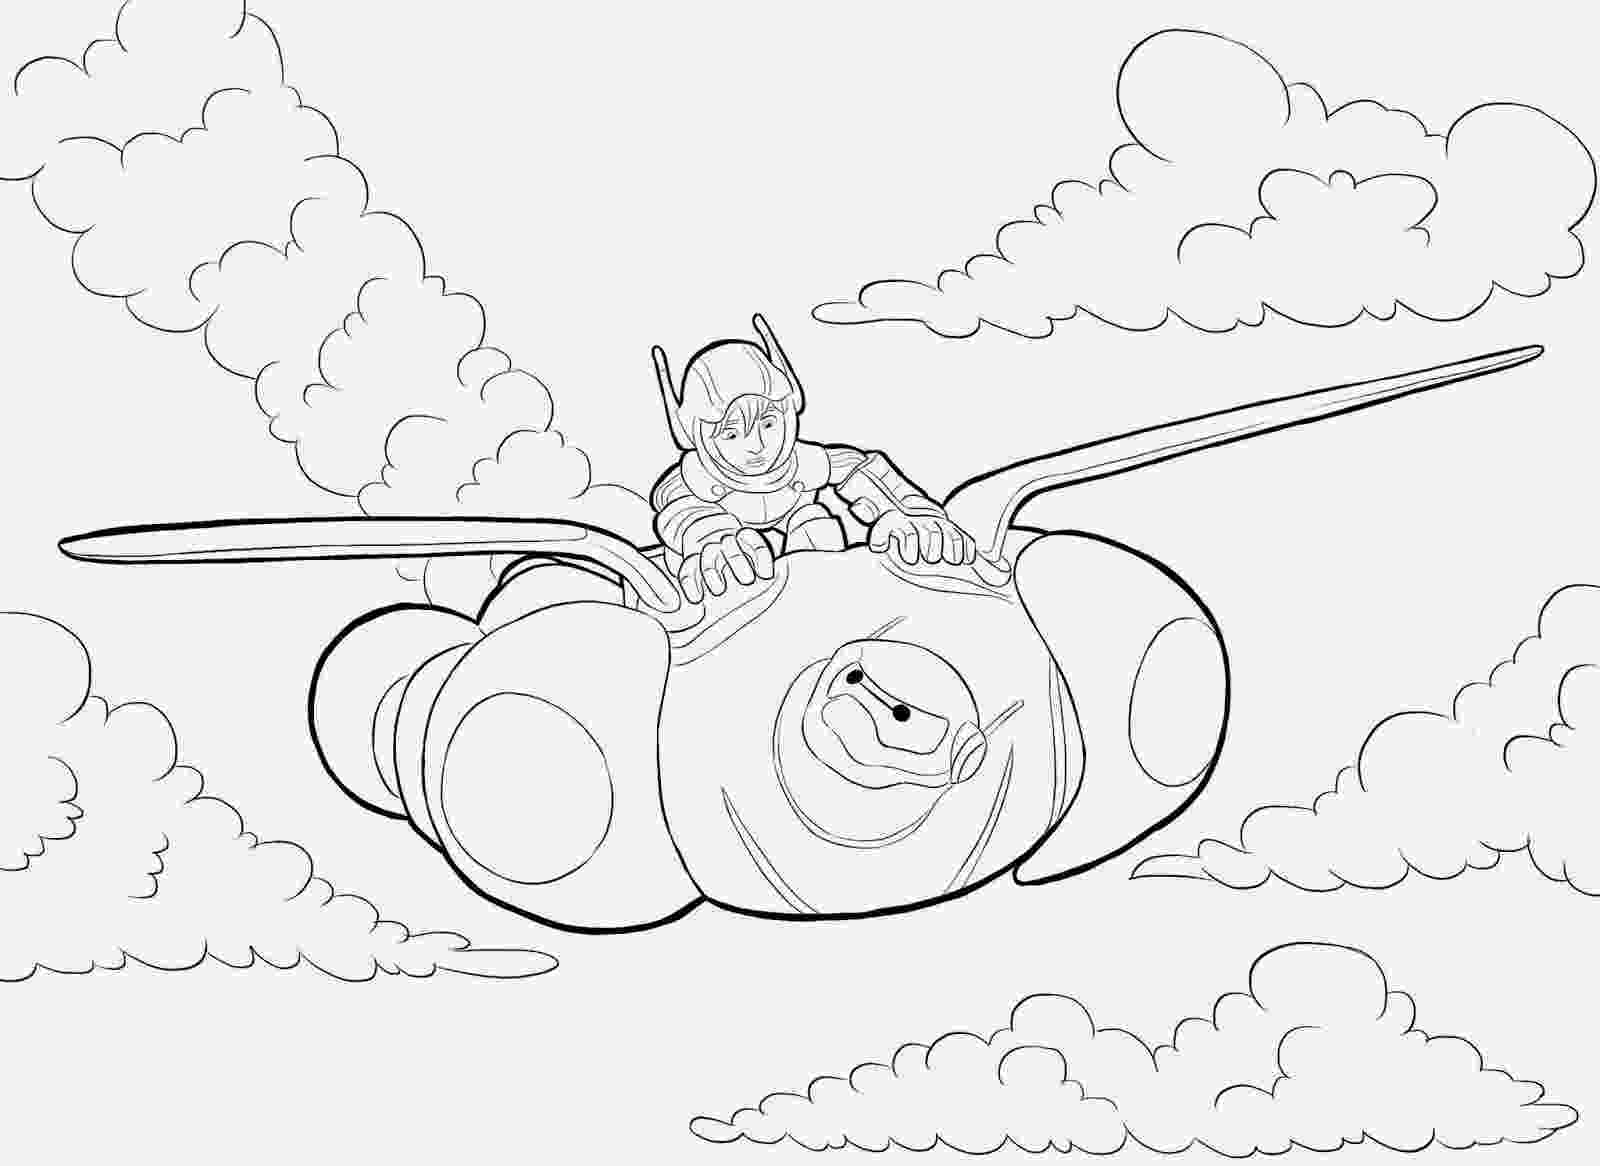 big hero 6 free colouring pages coloring pages big hero 6 coloring pages free and printable big 6 hero pages colouring free